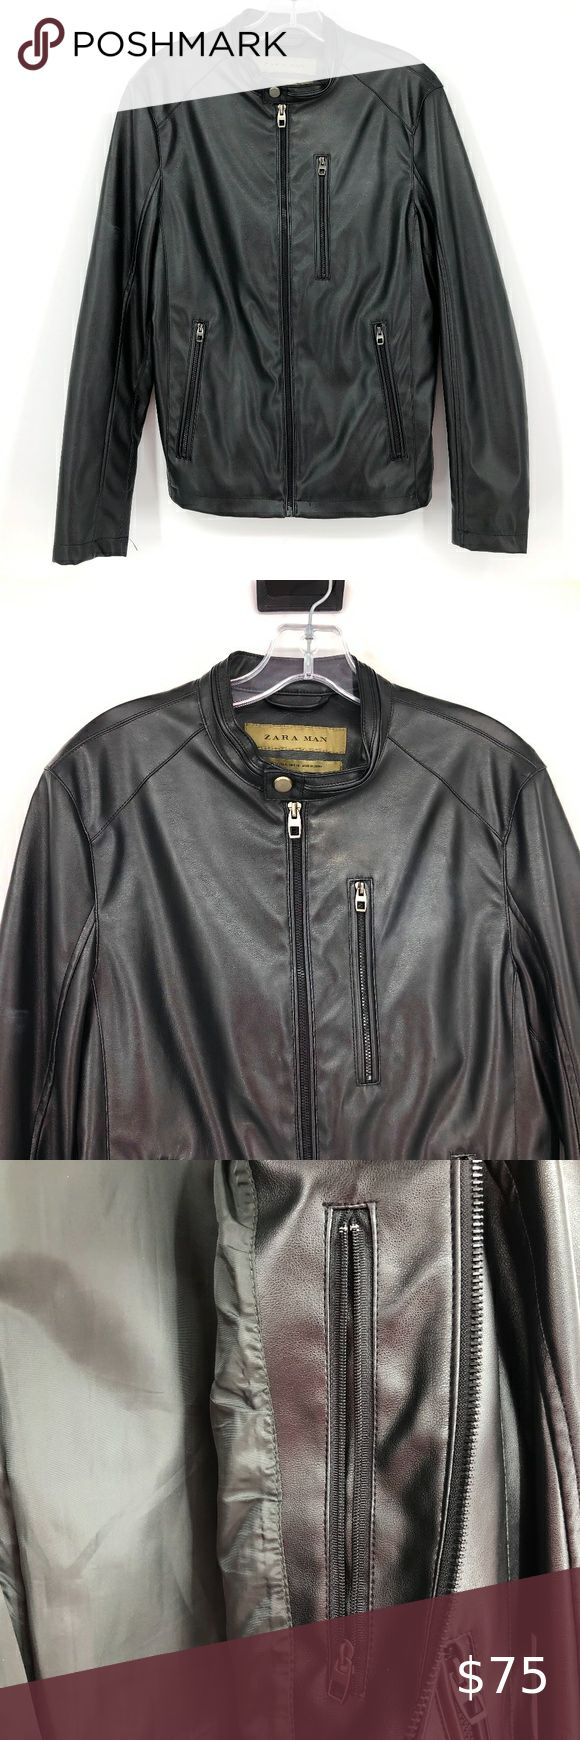 Zara Man Faux Leather Jacket in 2020 Faux leather